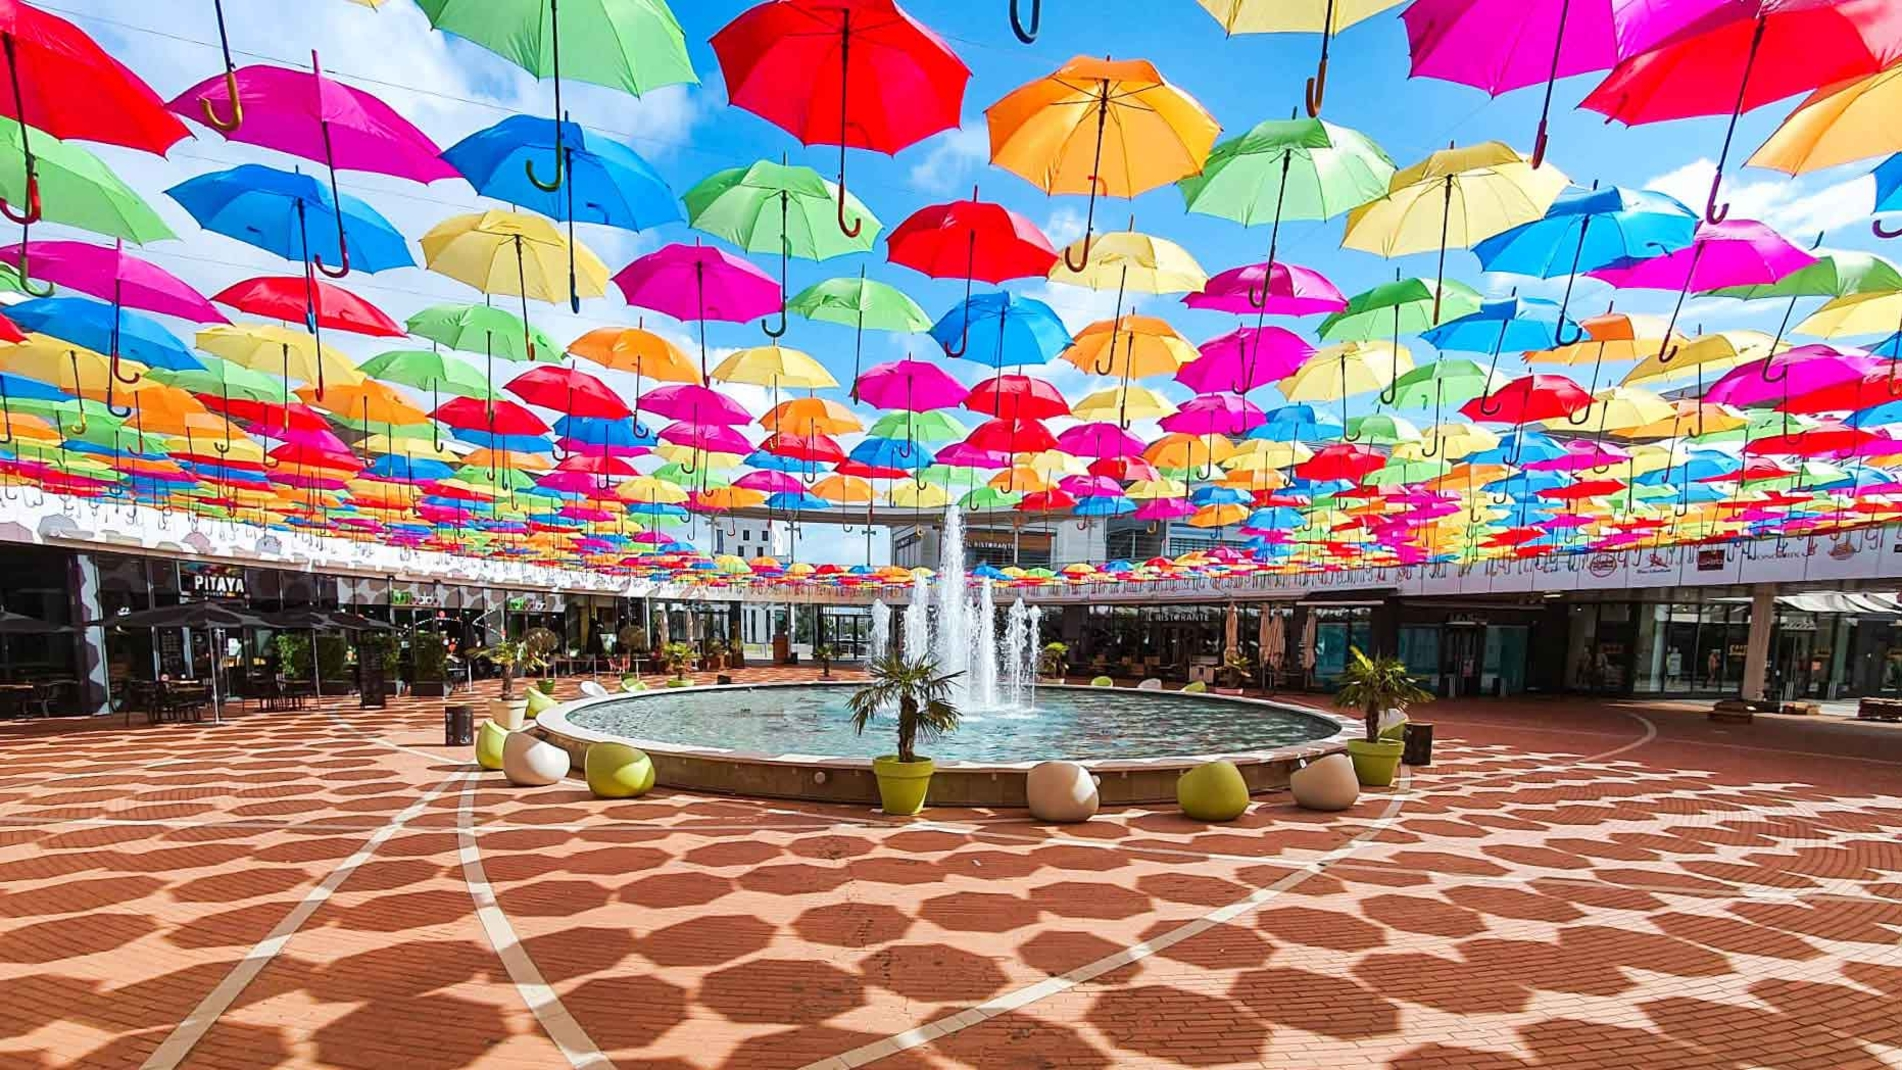 Umbrella Sky Project - Tours'20